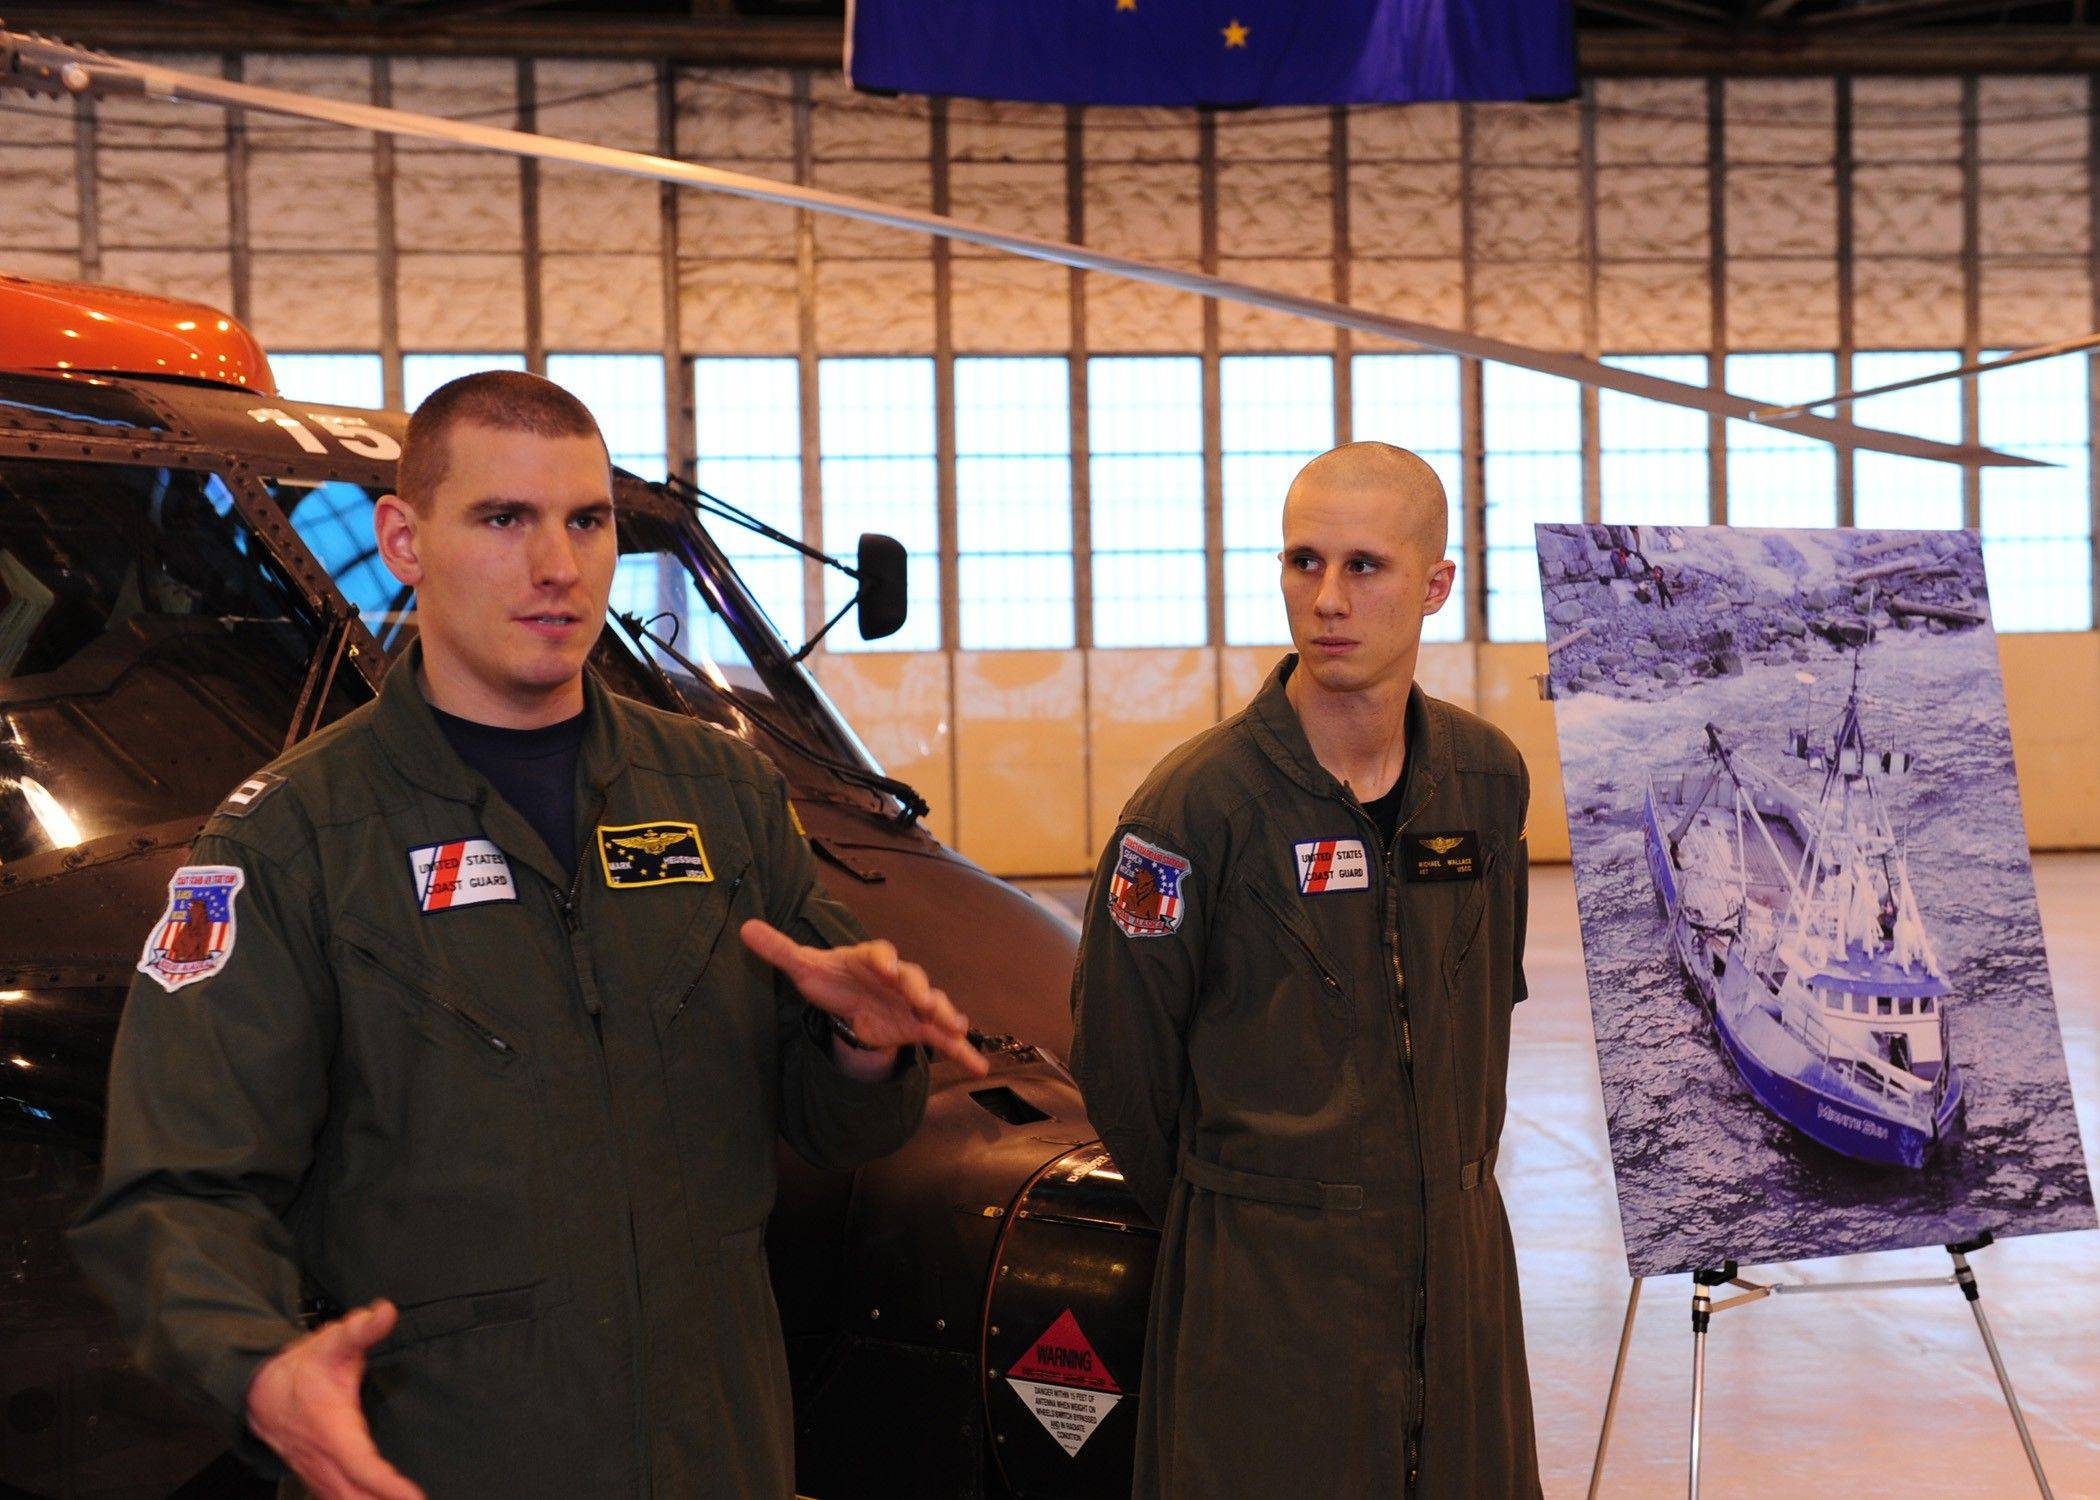 Lt. Mark Heussner, left, a Wheeling native and a Coast Guard helicopter pilot, describes his participation in the rescue of Alaskan fishermen on the Midnite Sun. At right is Petty Officer 3rd Class Michael Wallace.